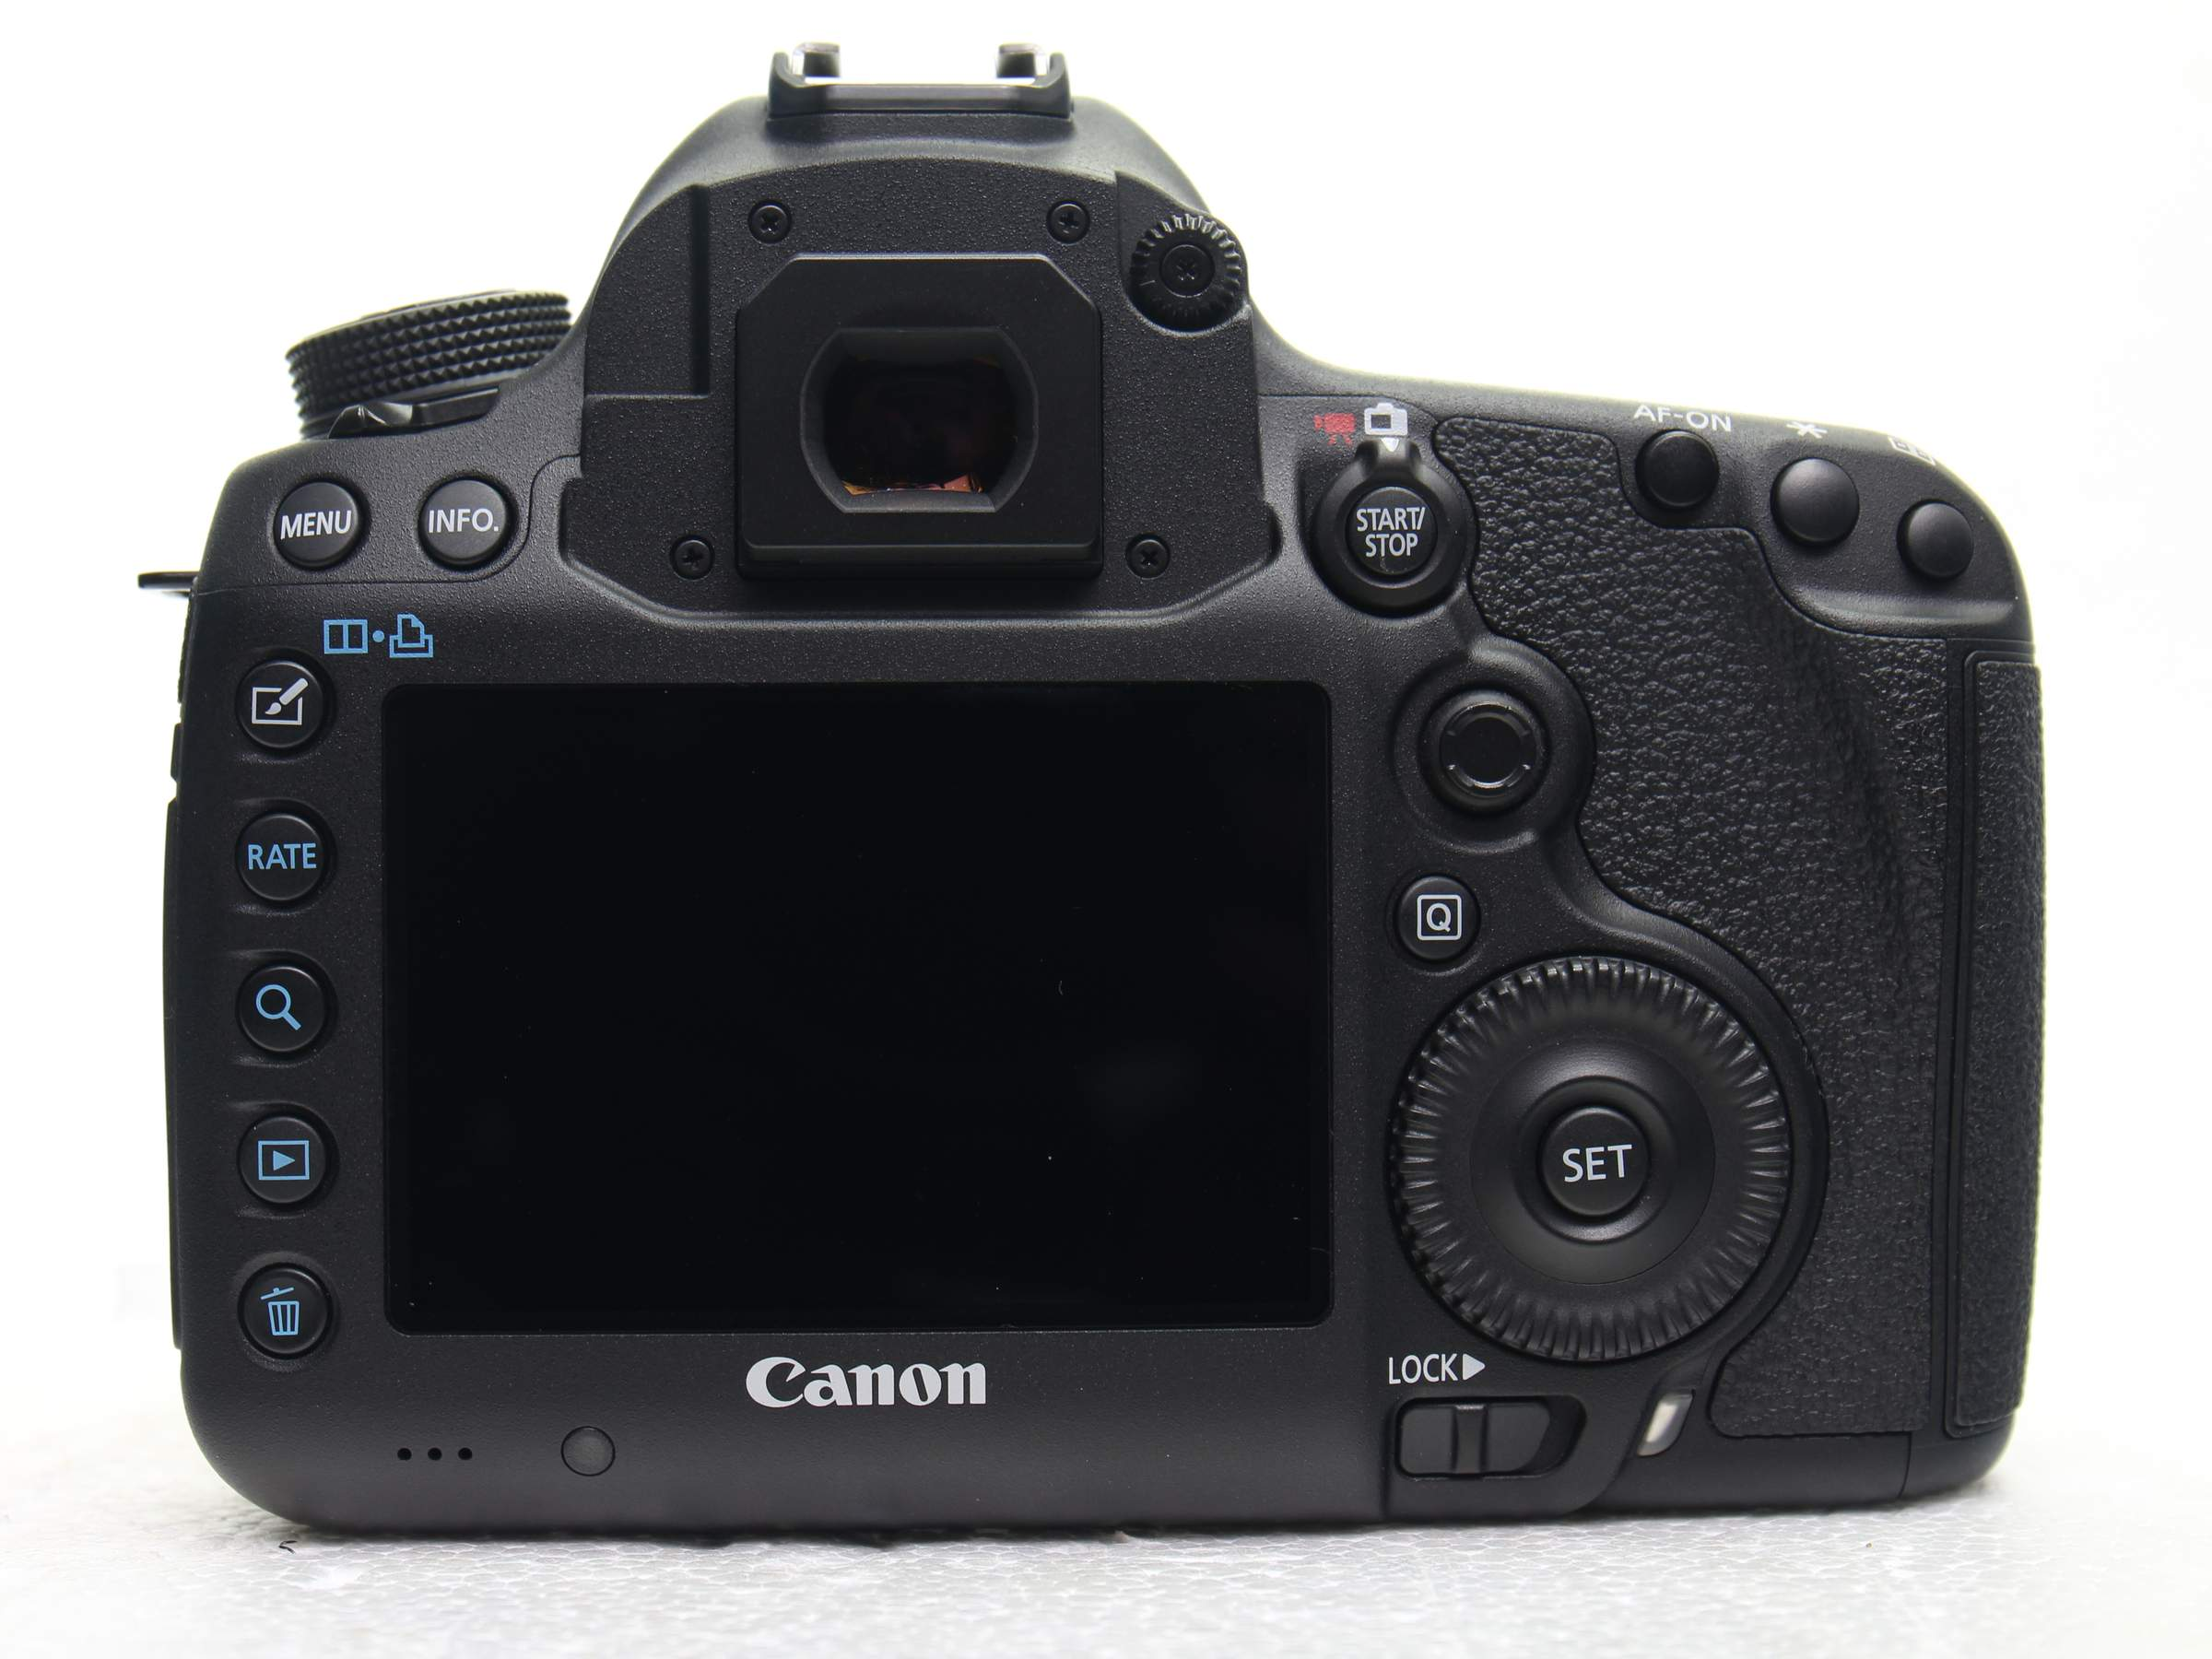 canon eos 5d mark iii rent from 201 month cameracorp. Black Bedroom Furniture Sets. Home Design Ideas